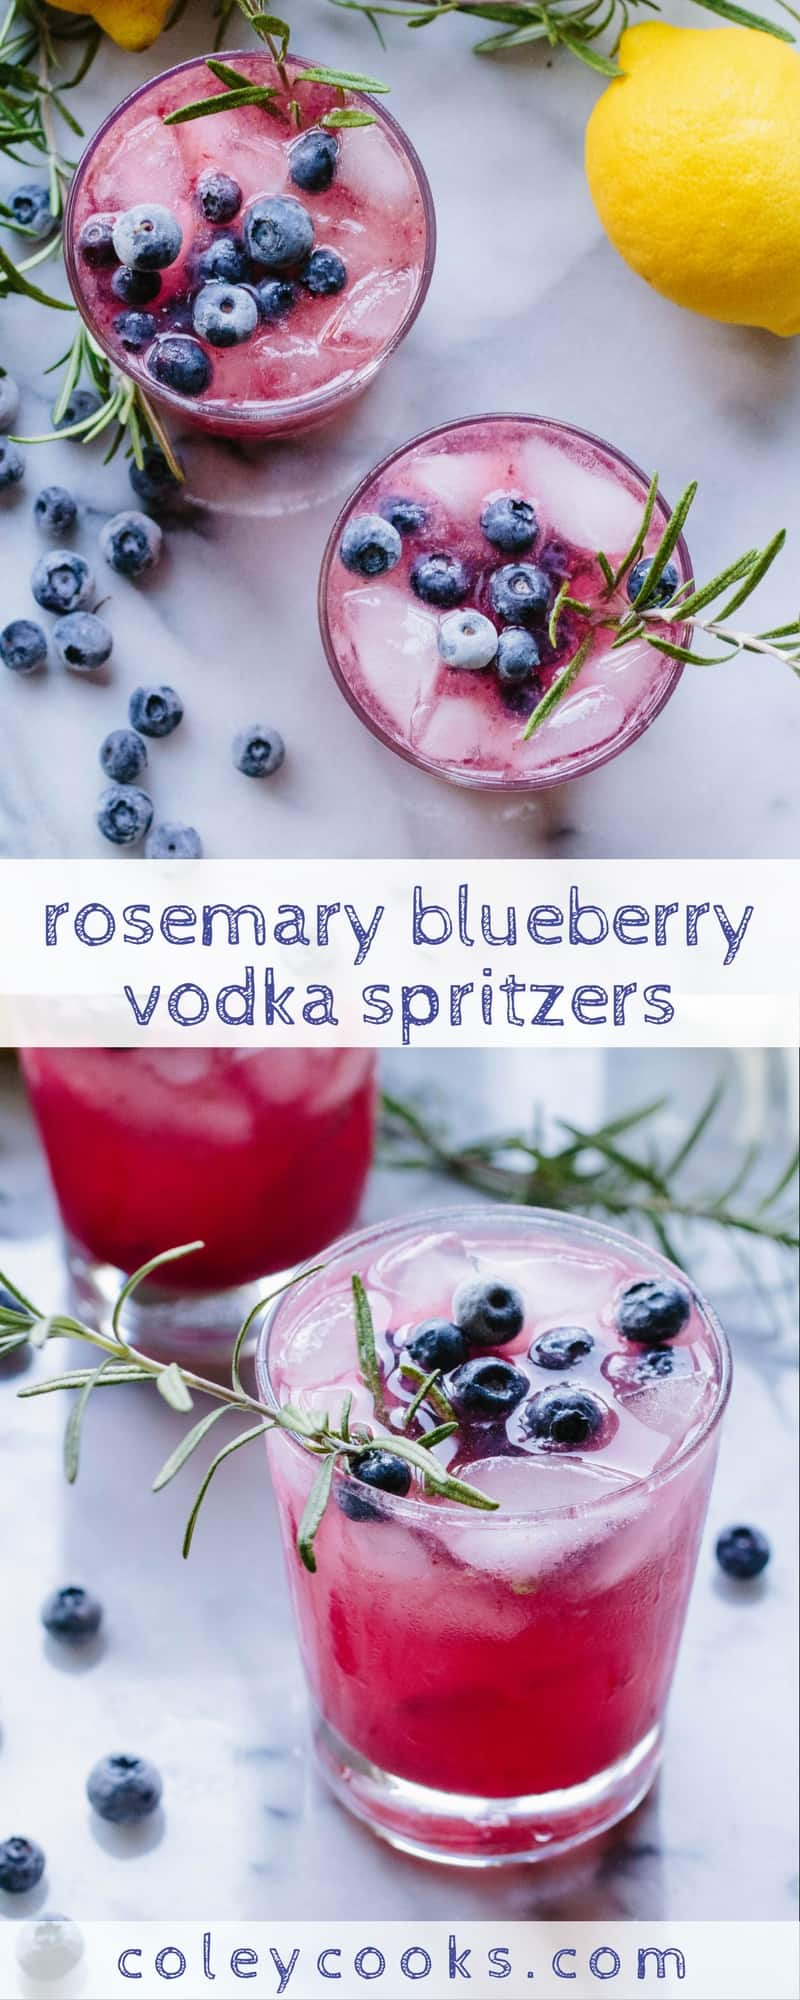 ROSEMARY BLUEBERRY VODKA SPRITZERS | Easy light and refreshing vodka cocktails! This boozy beverage is bubbly, tangy, and not too sweet! Perfect for summer sipping! | ColeyCooks.com